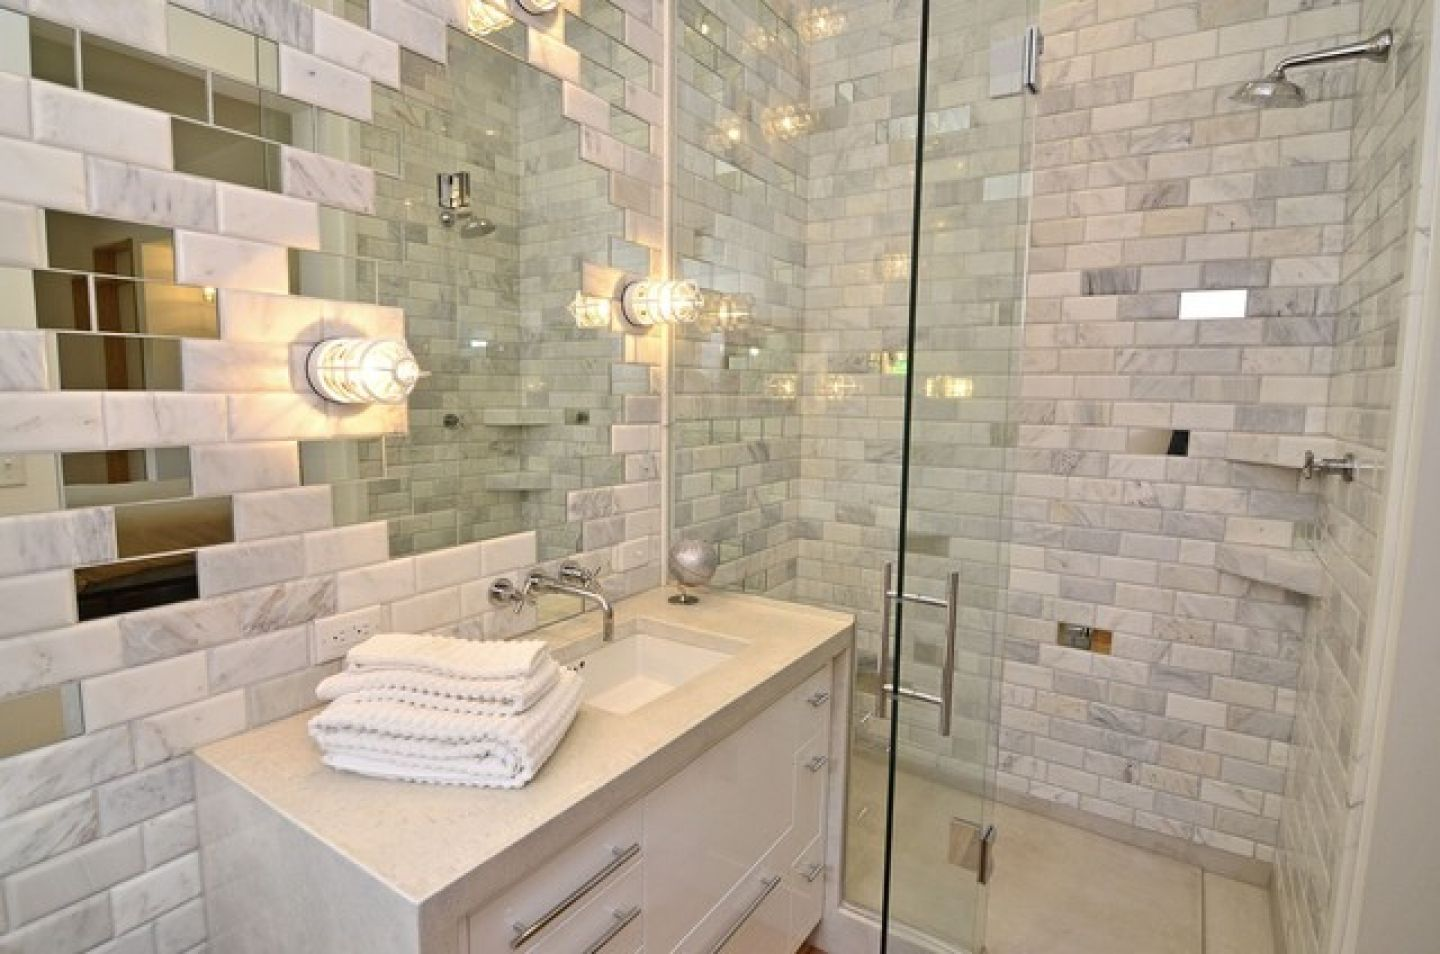 Mirror Tiles Ideas for Modern Interior Design. Nice glass and tile trimmed bathroom